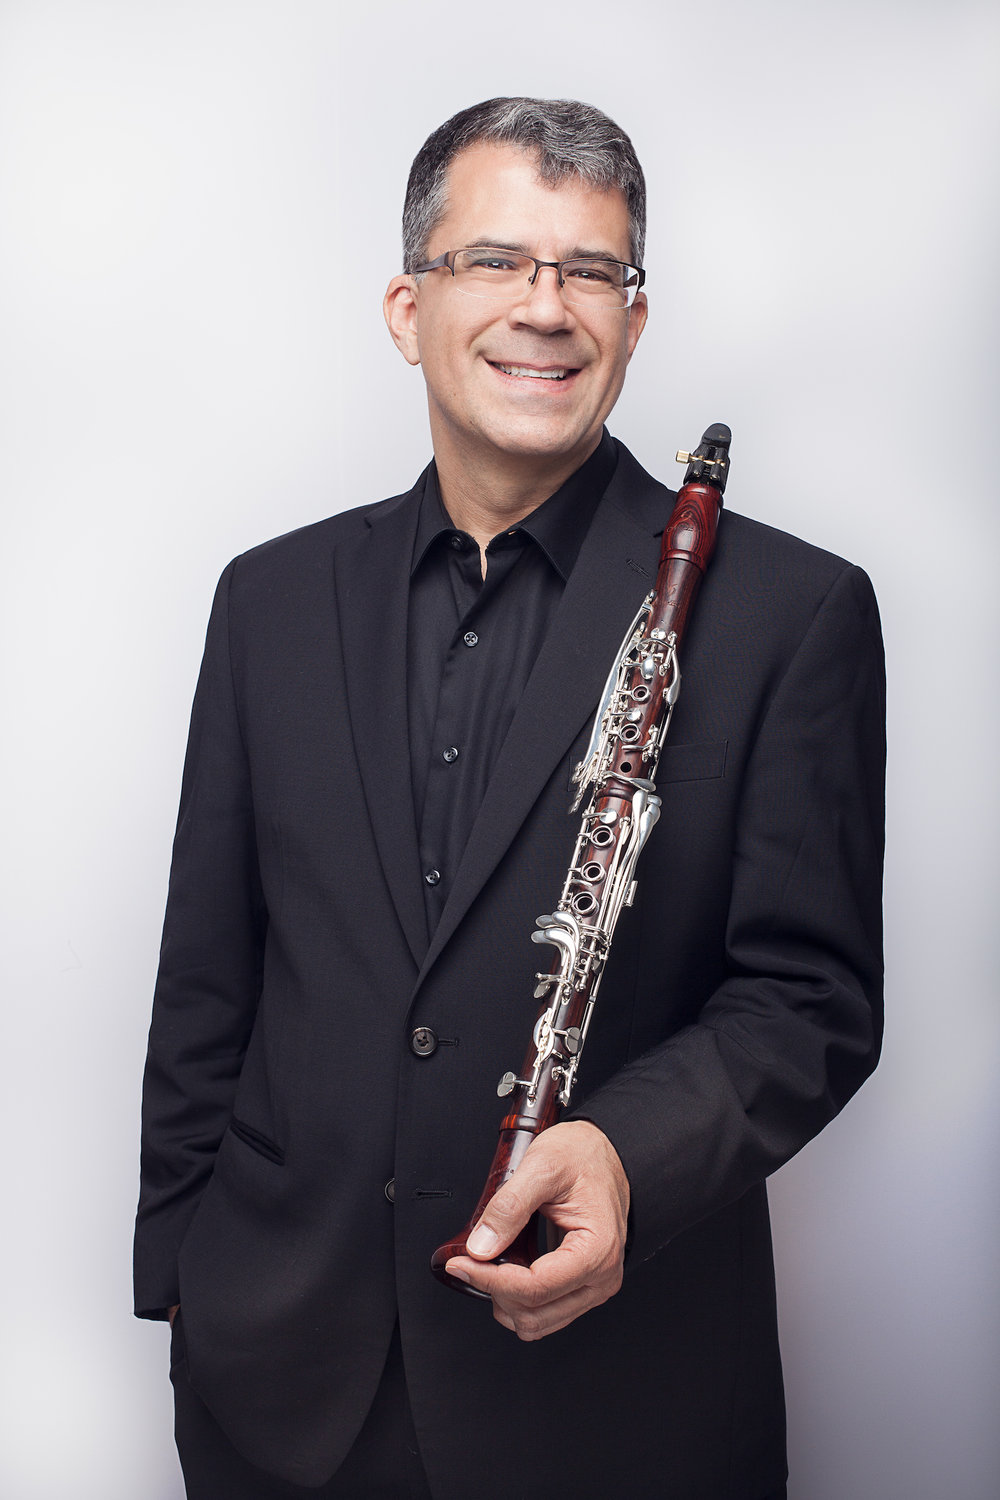 Jerome Simas - was appointed to the San Francisco Symphony as bass clarinetist in 2012. He has performed as a guest clarinetist with orchestras across the US, including the San Francisco Opera (principal clarinet) and The Cleveland Orchestra. As a chamber musician, he studied and performed at Marlboro Music in Vermont and also represented the New World Symphony in chamber music concerts in Europe and the US. He has appeared as soloist with the California Symphony, New World Symphony, Monterey Symphony, Modesto Symphony, Iris Chamber Orchestra, and the Cleveland Institute of Music Symphony, where he received his BM and MM as a student of Cleveland Orchestra principal clarinetist, Franklin Cohen. He has taught at UC Davis, Stanford University, San Francisco Conservatory, and was most recently Assistant Professor of Clarinet at the University of Oregon School of Music and Dance.Photo credit: Valentina Sadiul